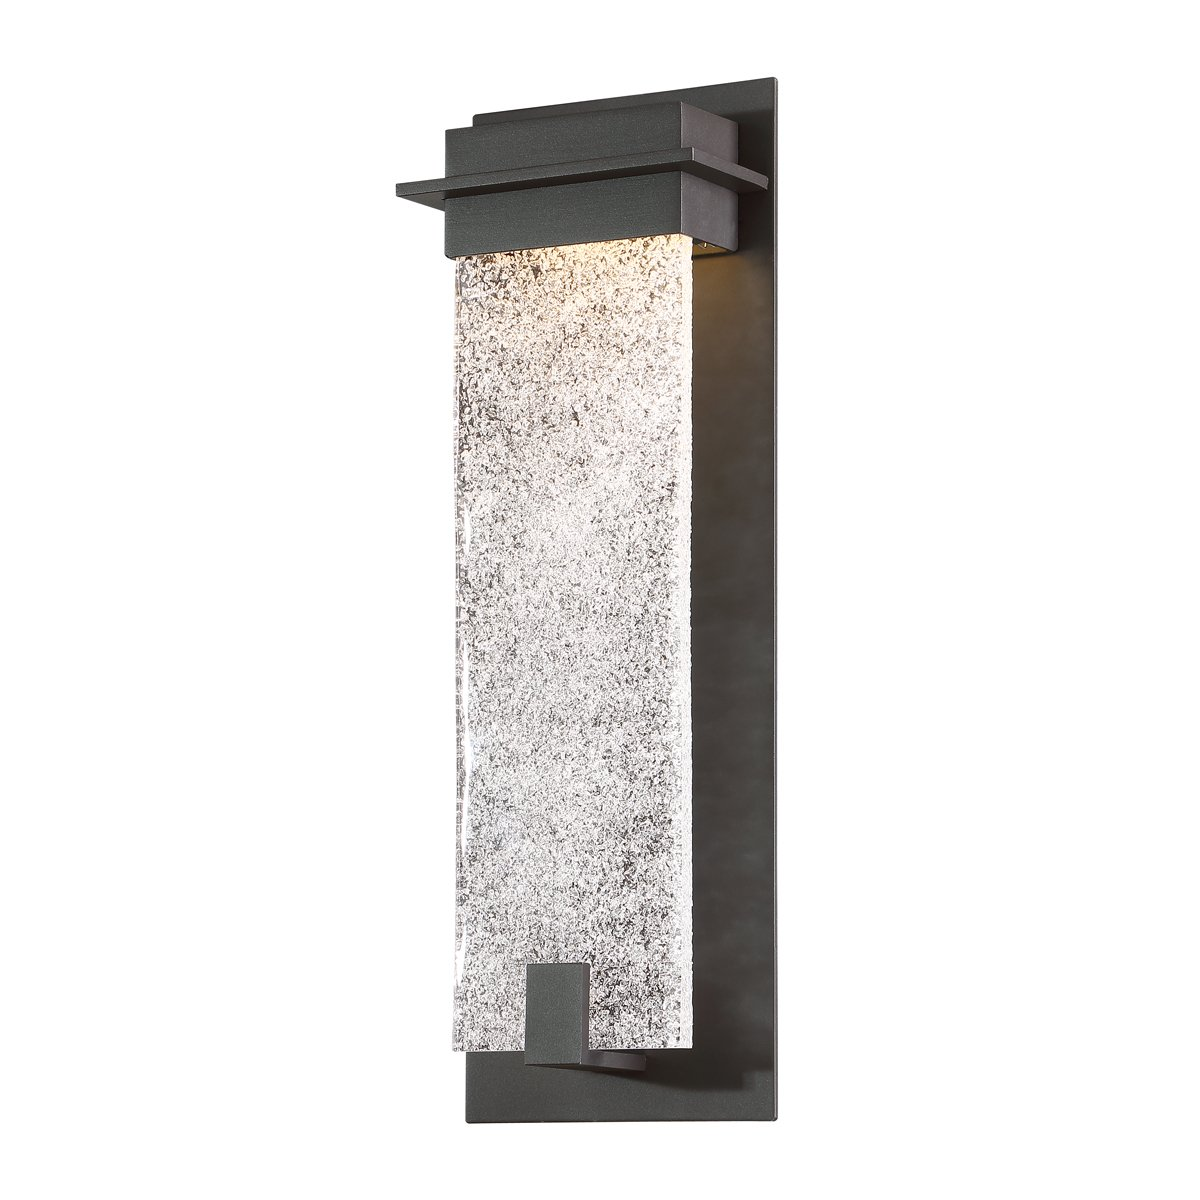 WAC Lighting WS-W41716-BZ Spa 16'' LED Outdoor Wall Light, 16 Inches, Bronze by WAC Lighting (Image #1)